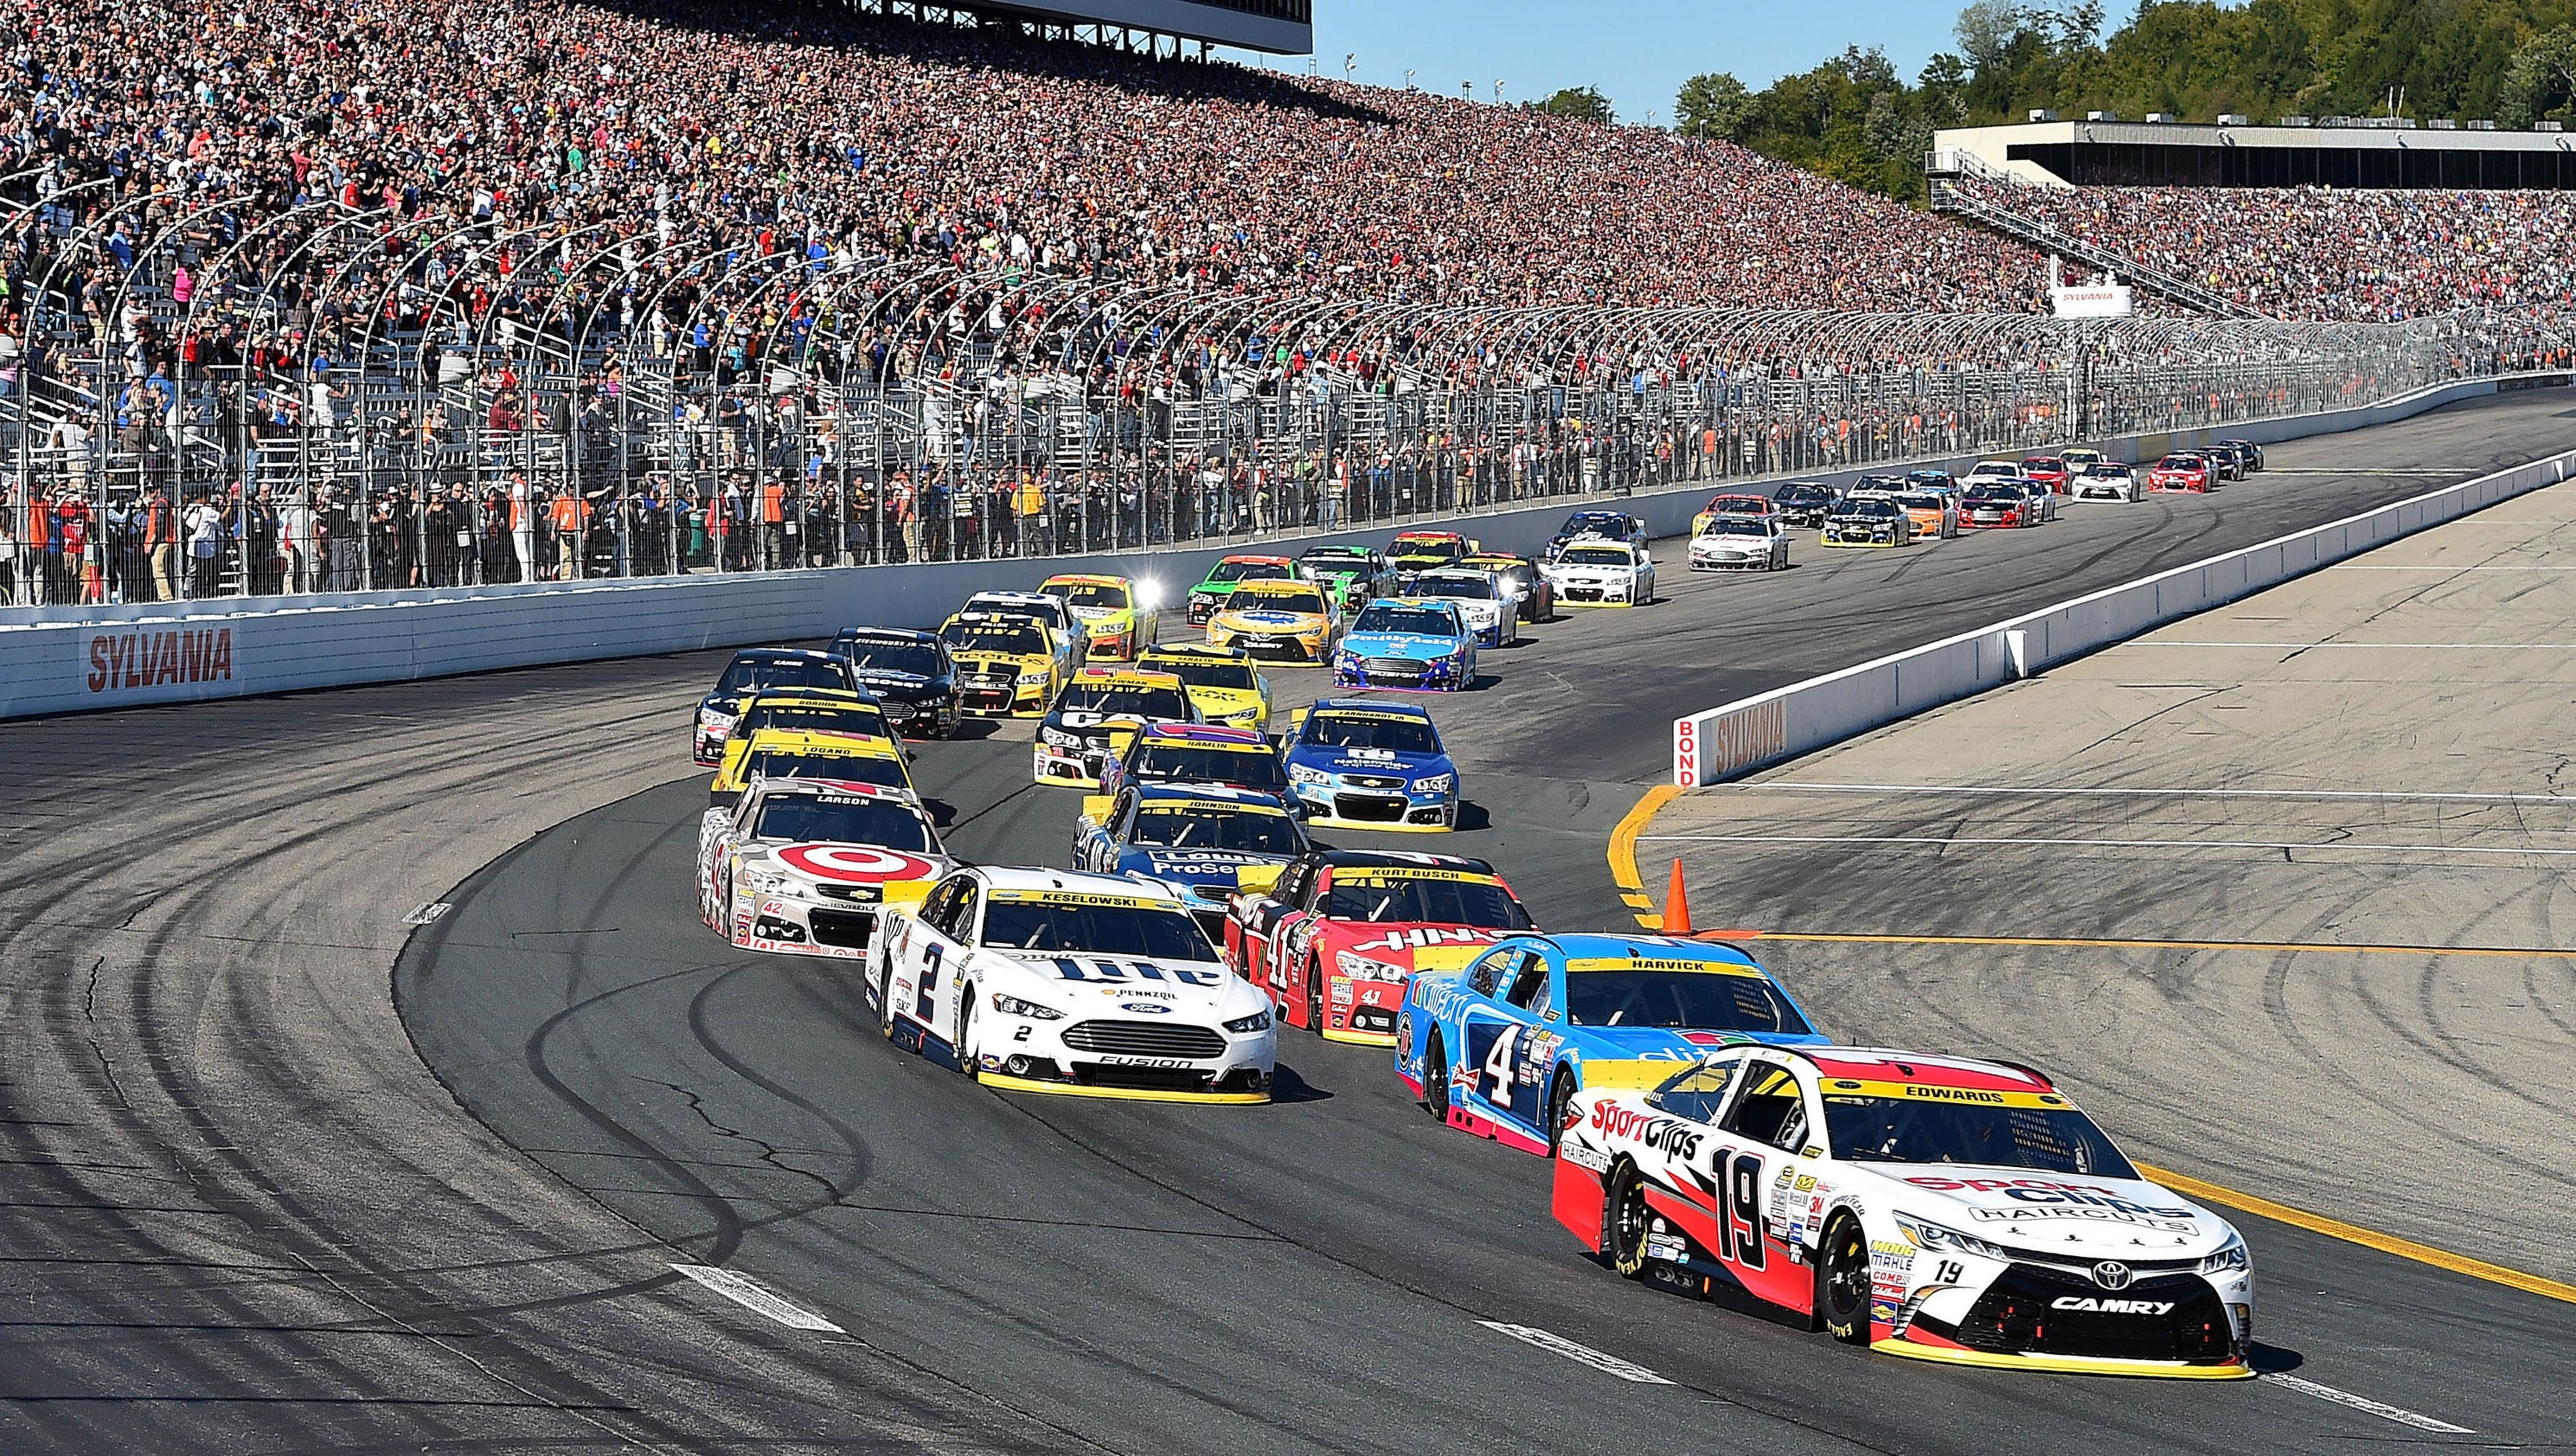 Nascar At New Hampshire 2016 Start Time Lineup Tv Schedule And More